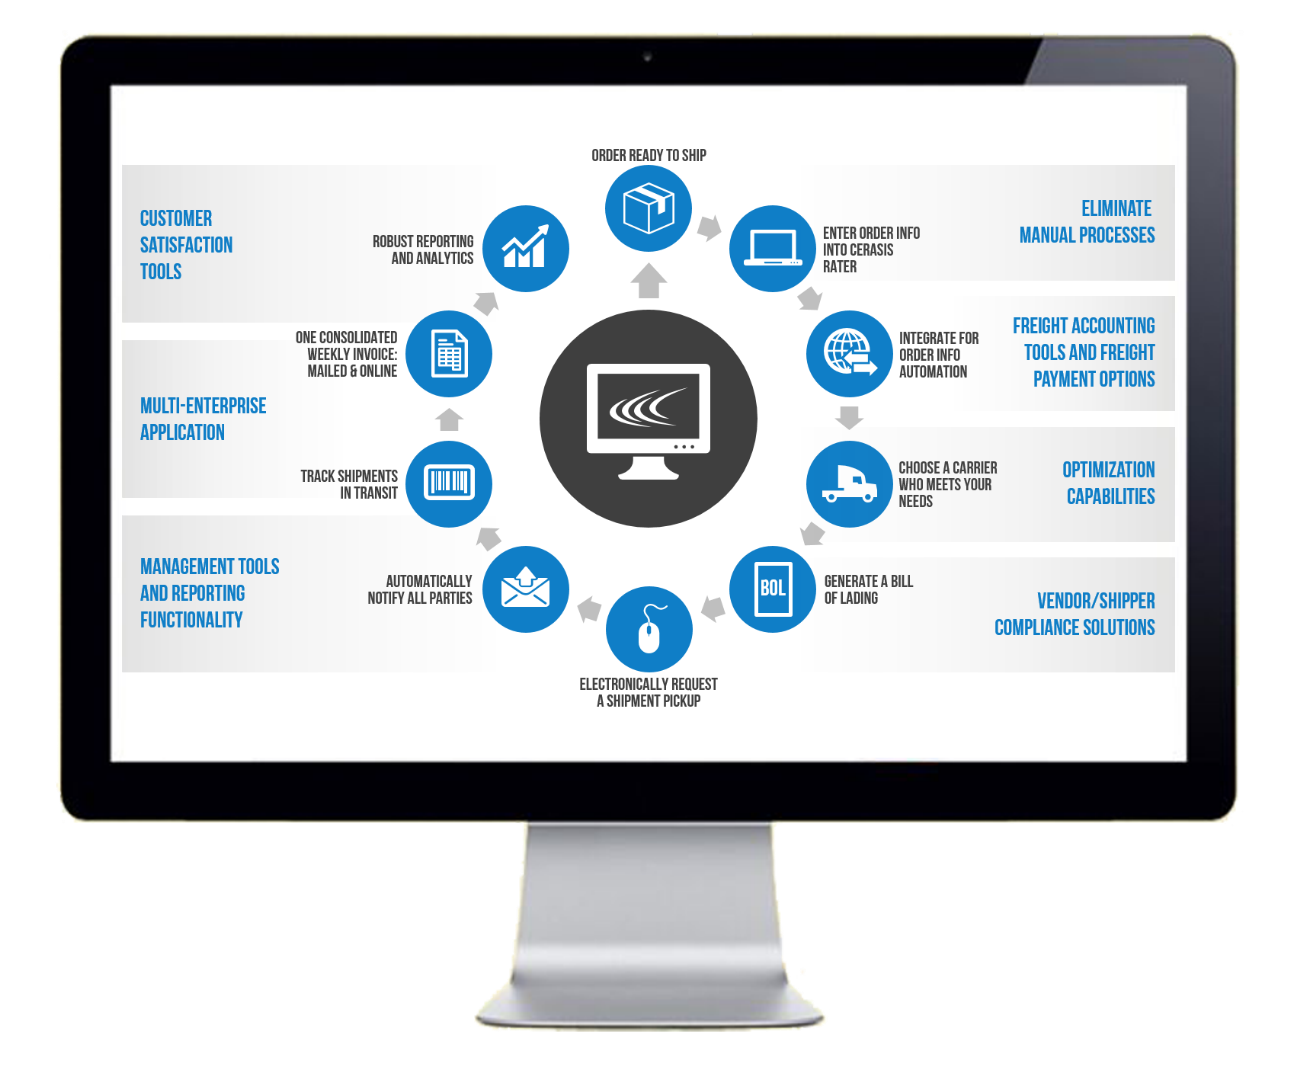 freight management system Our freight management software solutions include freight forwarding software, purchase order management, real-time online cargo tracking, inventory control software, third-party logistics.